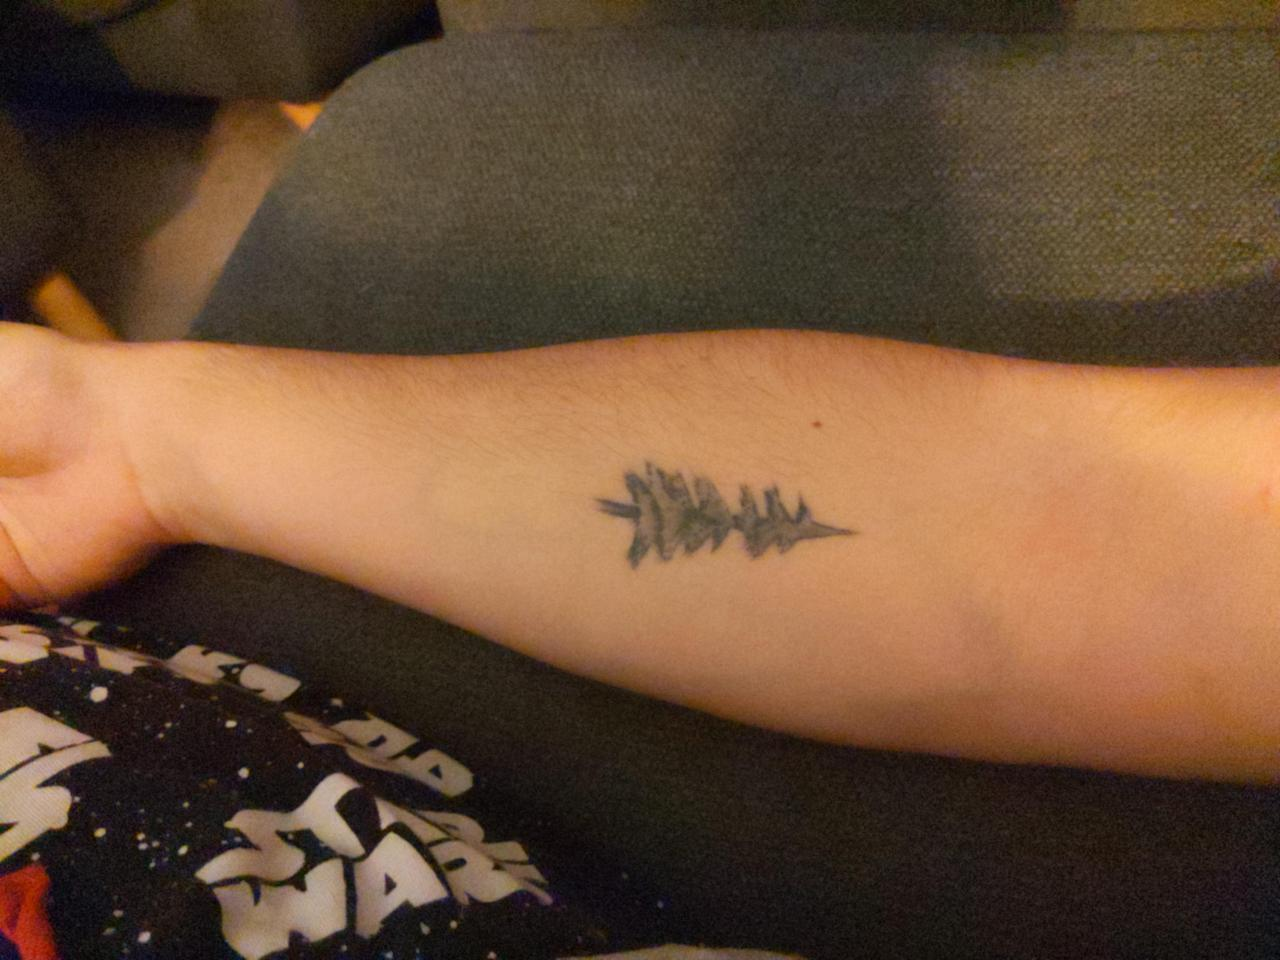 I've got this lone tree tattoo and I really need a design to expand it for a full piece any design ideas for incorporating it into a bigger design ?